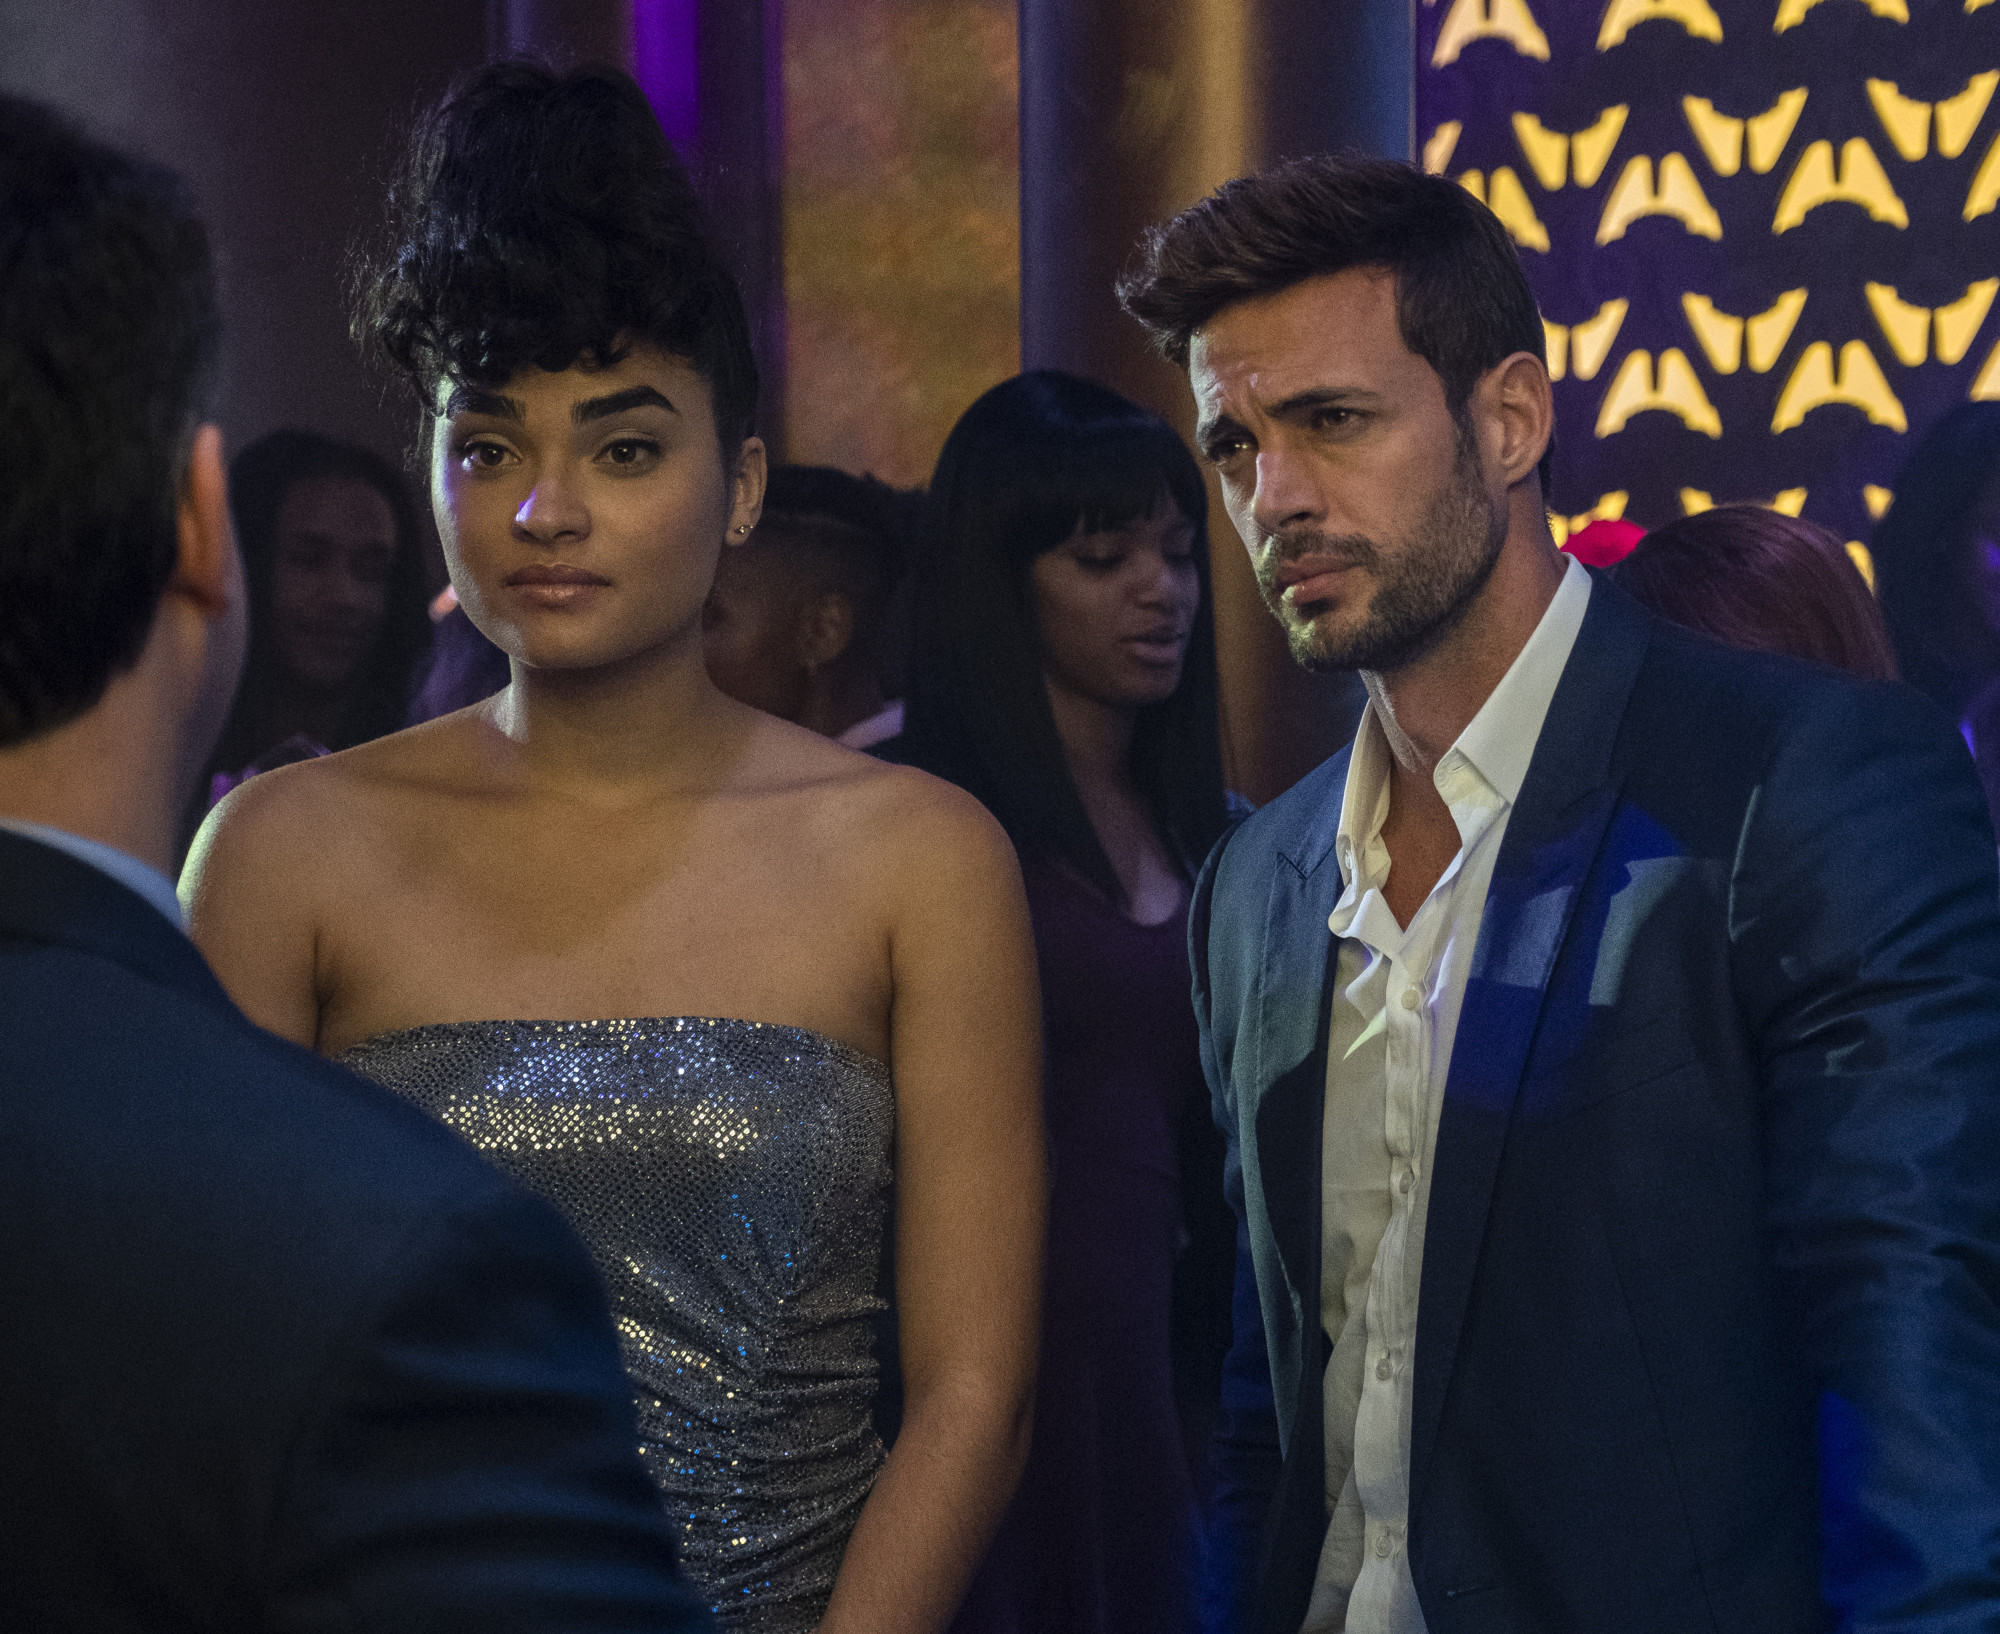 """STAR: L-R: Brittany O'Grady and William Levy in the """"Watch the Throne"""" episode of STAR airing Wednesday, March 20 (9:00-10:00 PM ET/PT) on FOX. ©2019 Fox Broadcasting Co. CR: Wilford Harewood/FOX."""